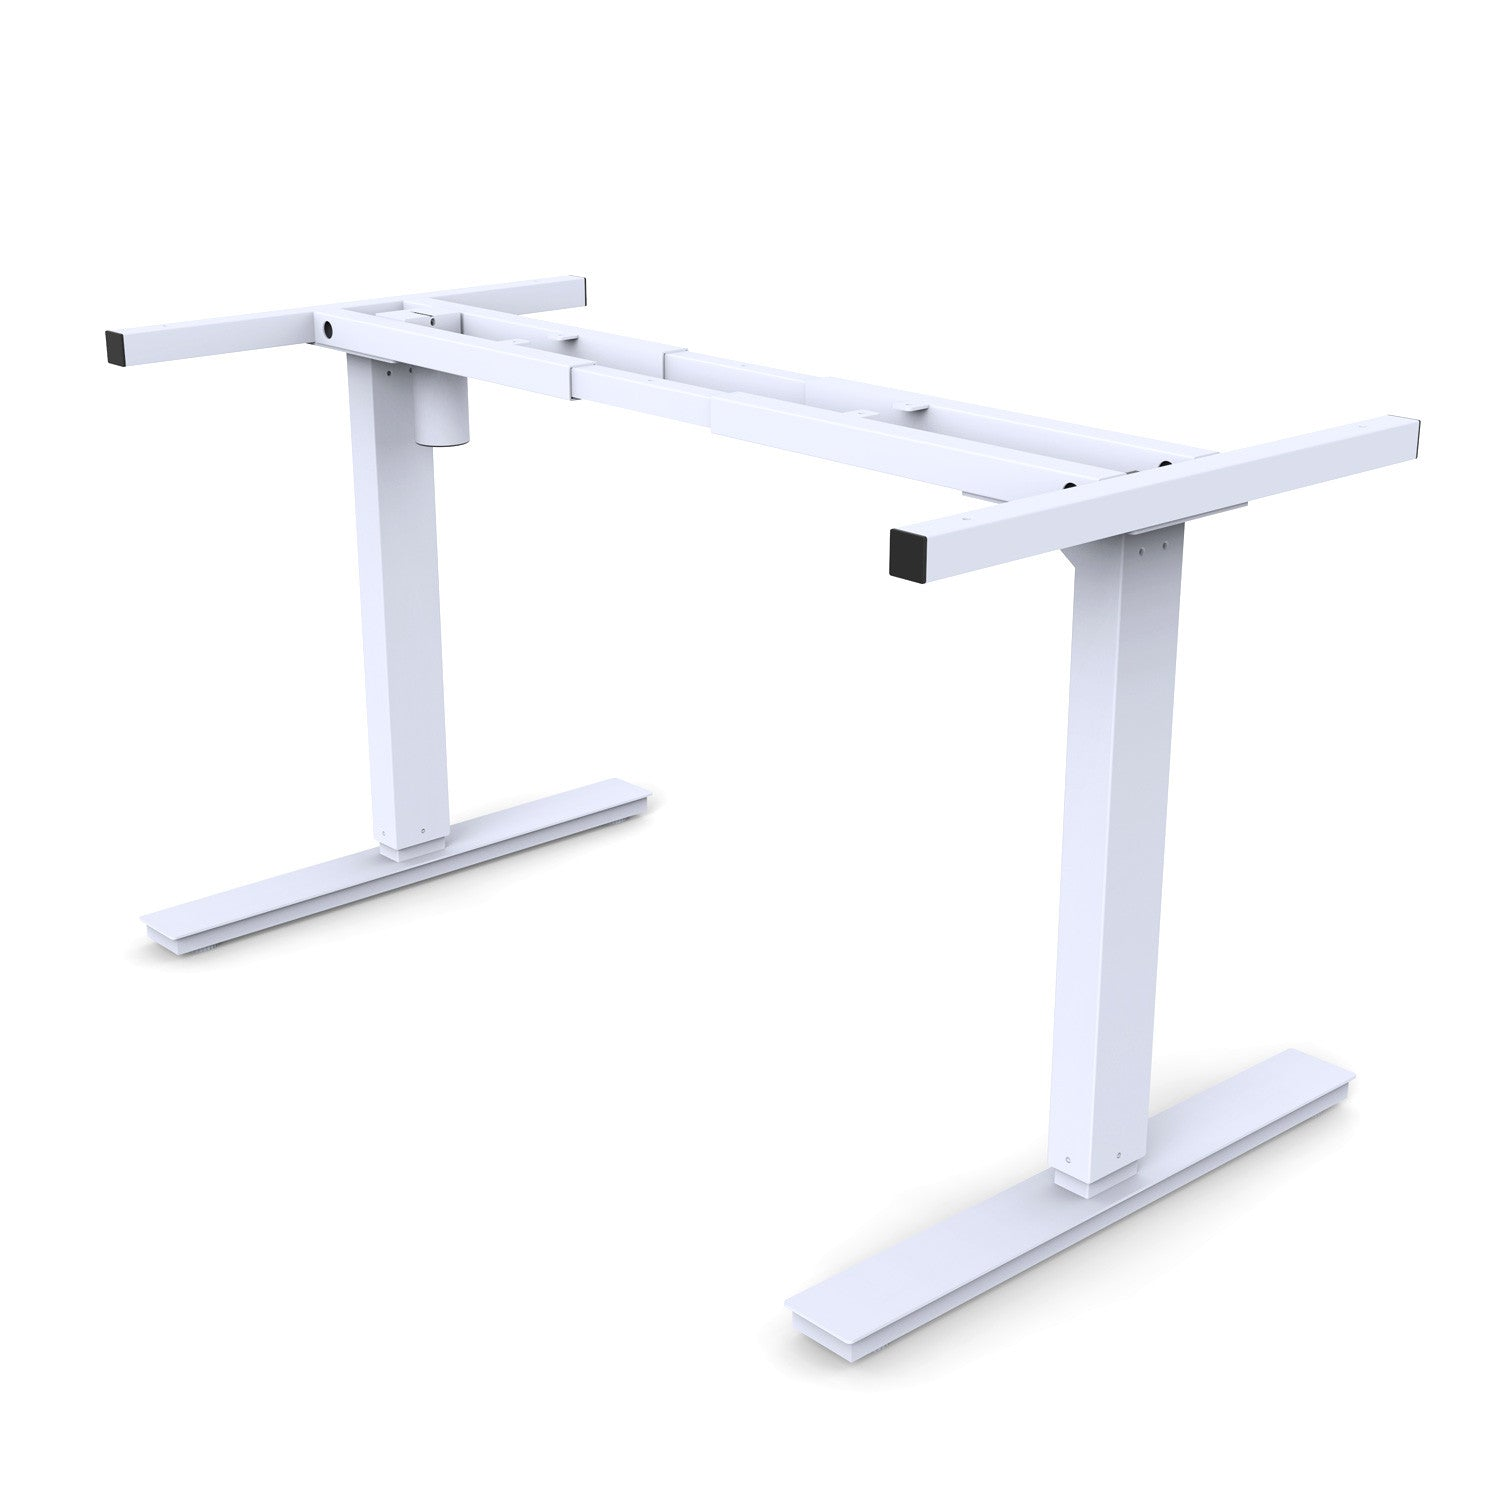 sit top computer height adjustable raises desk and outstanding stand legs that ikea creativity standing lowers